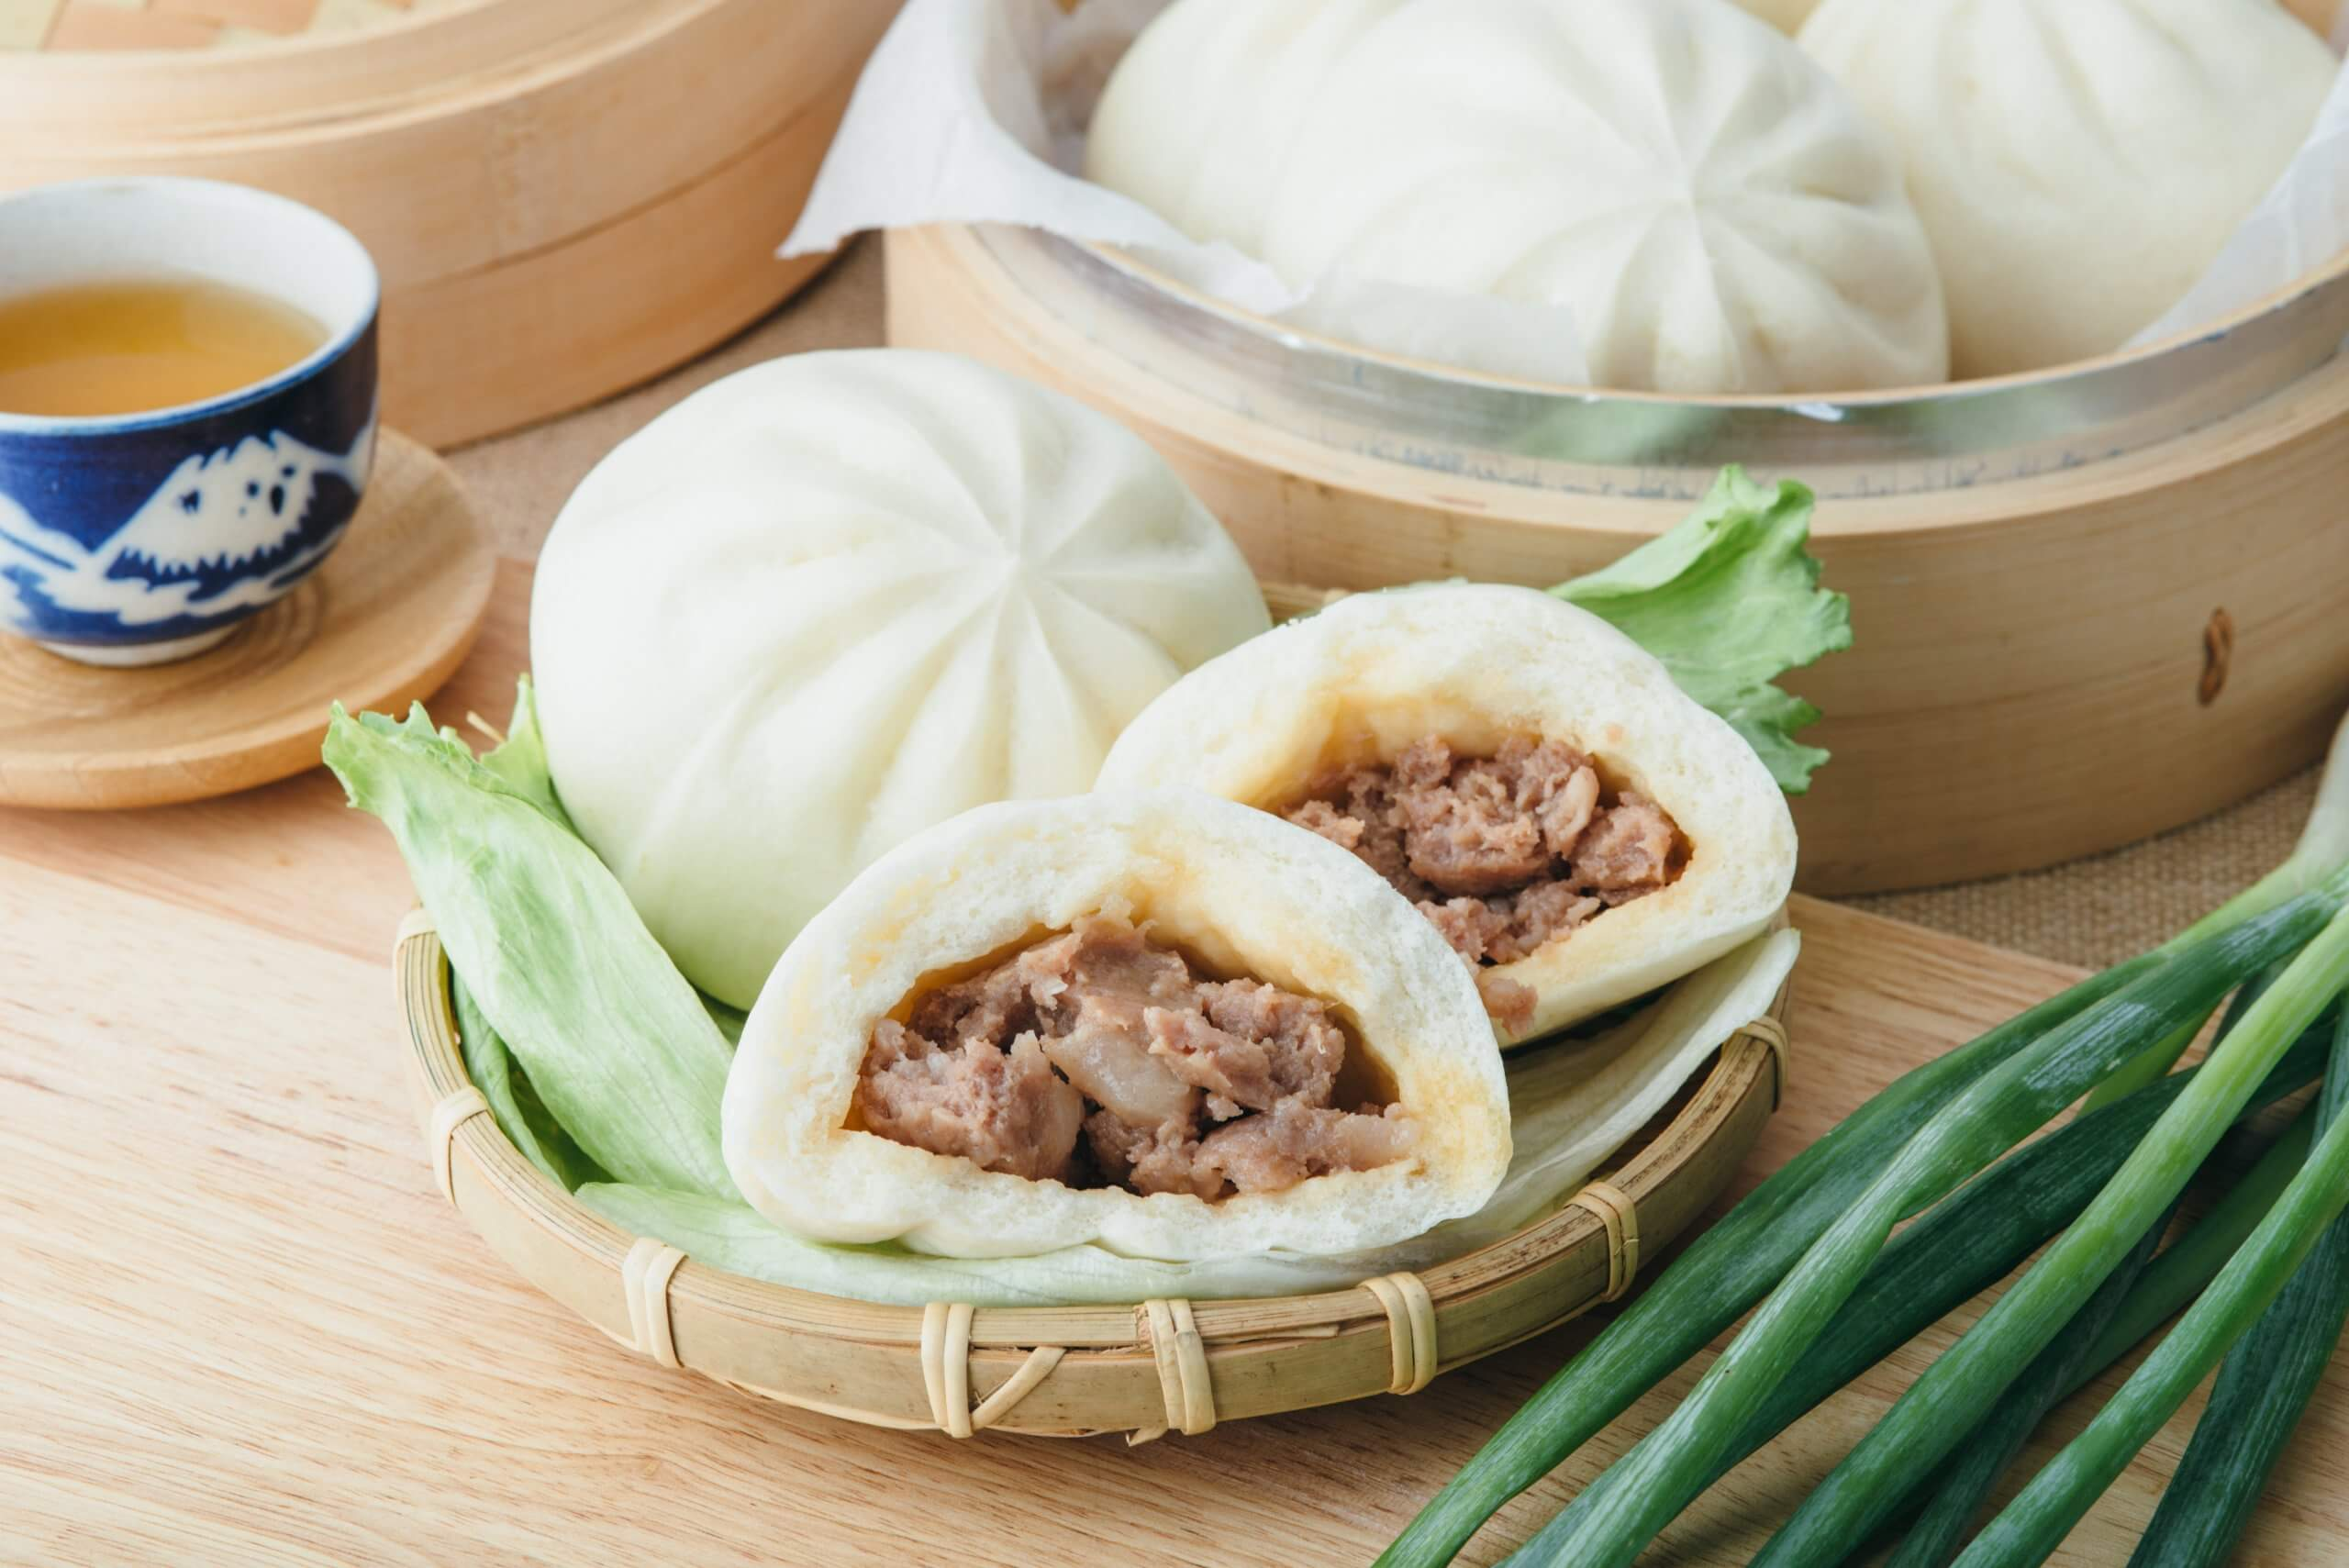 meat bun made by automatic bao forming machine